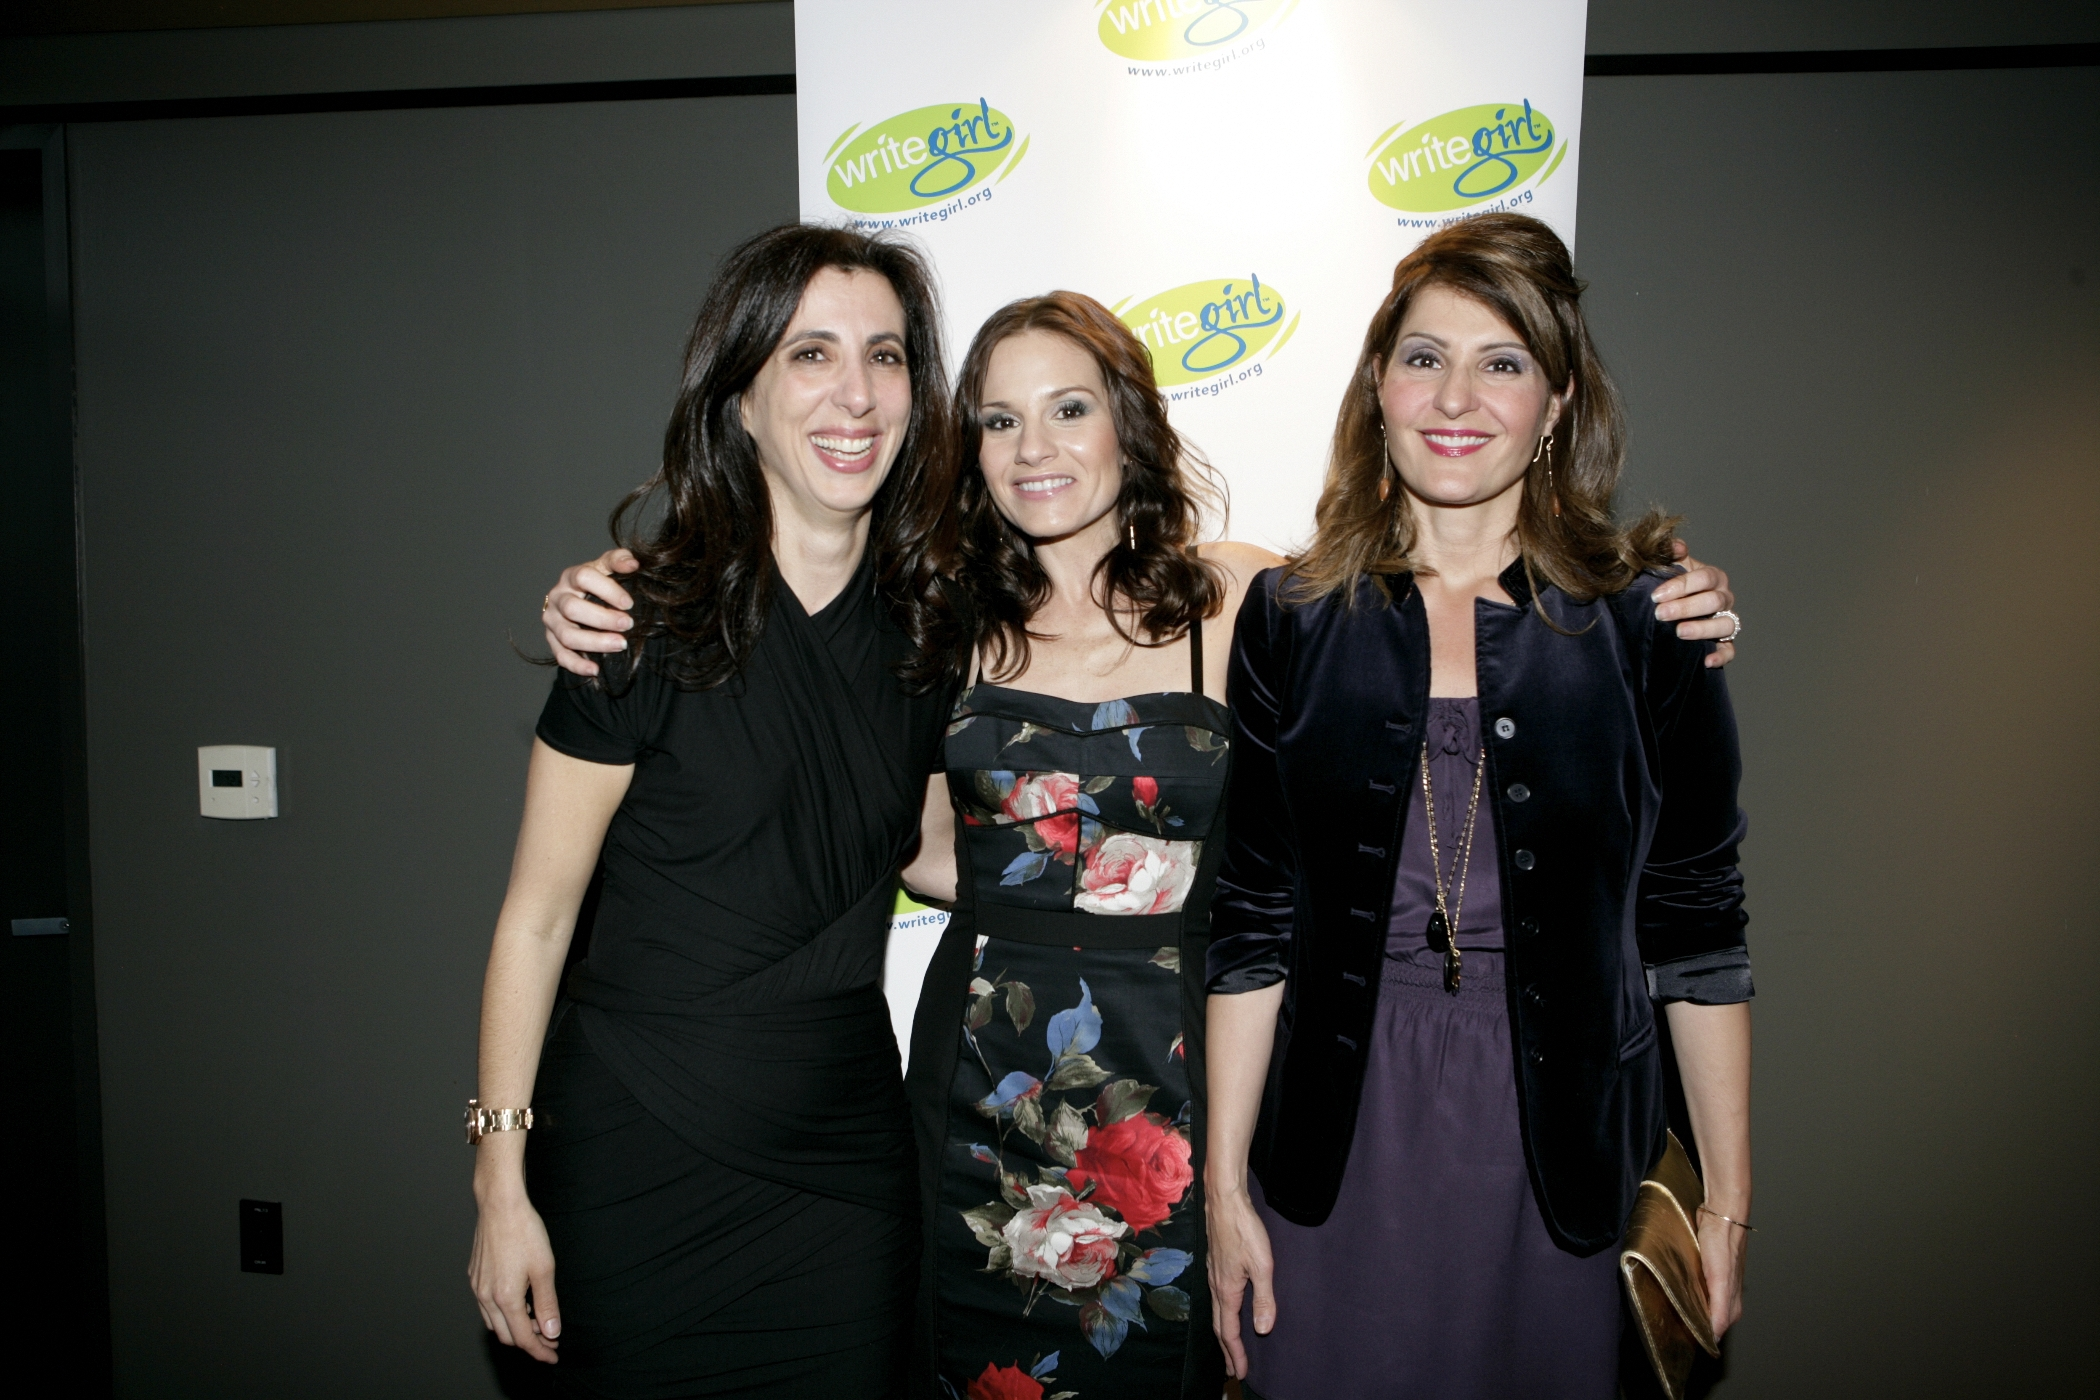 boldink-awards-2011-honorees-3.jpg